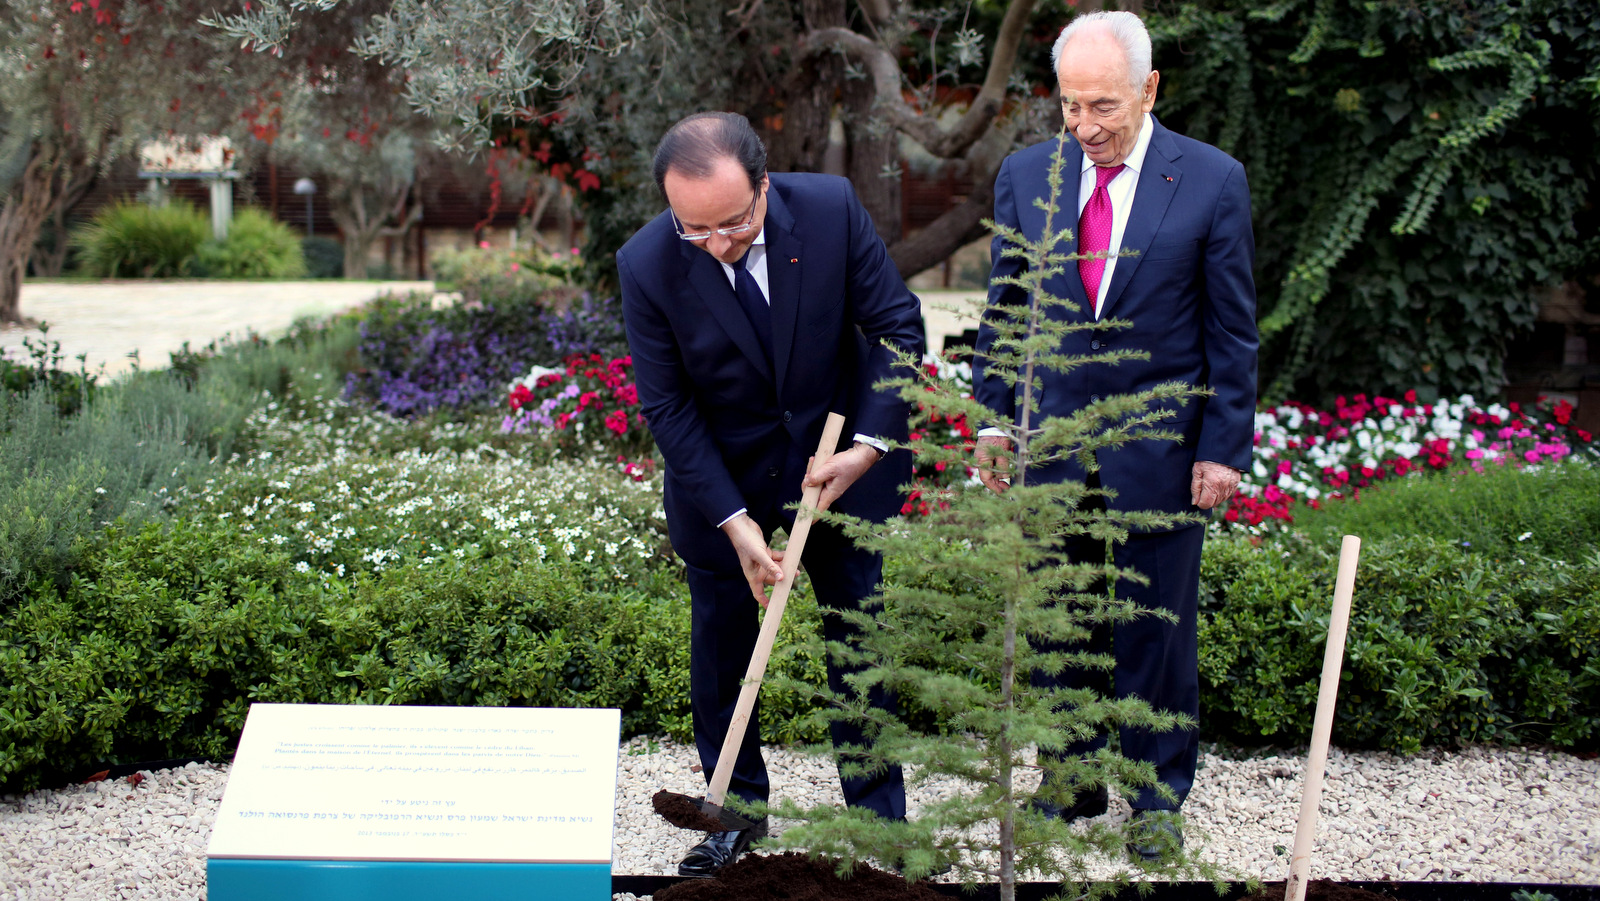 Israeli President Shimon Peres, right, and French President Francois Hollande, plant a Cedar tree in Jerusalem. The National Lawyers Guild called for the investigation of the Jewish National Fund, an organization famous for planting tress on land forcibly seized from Palestinians. (AP/Abir Sultan)